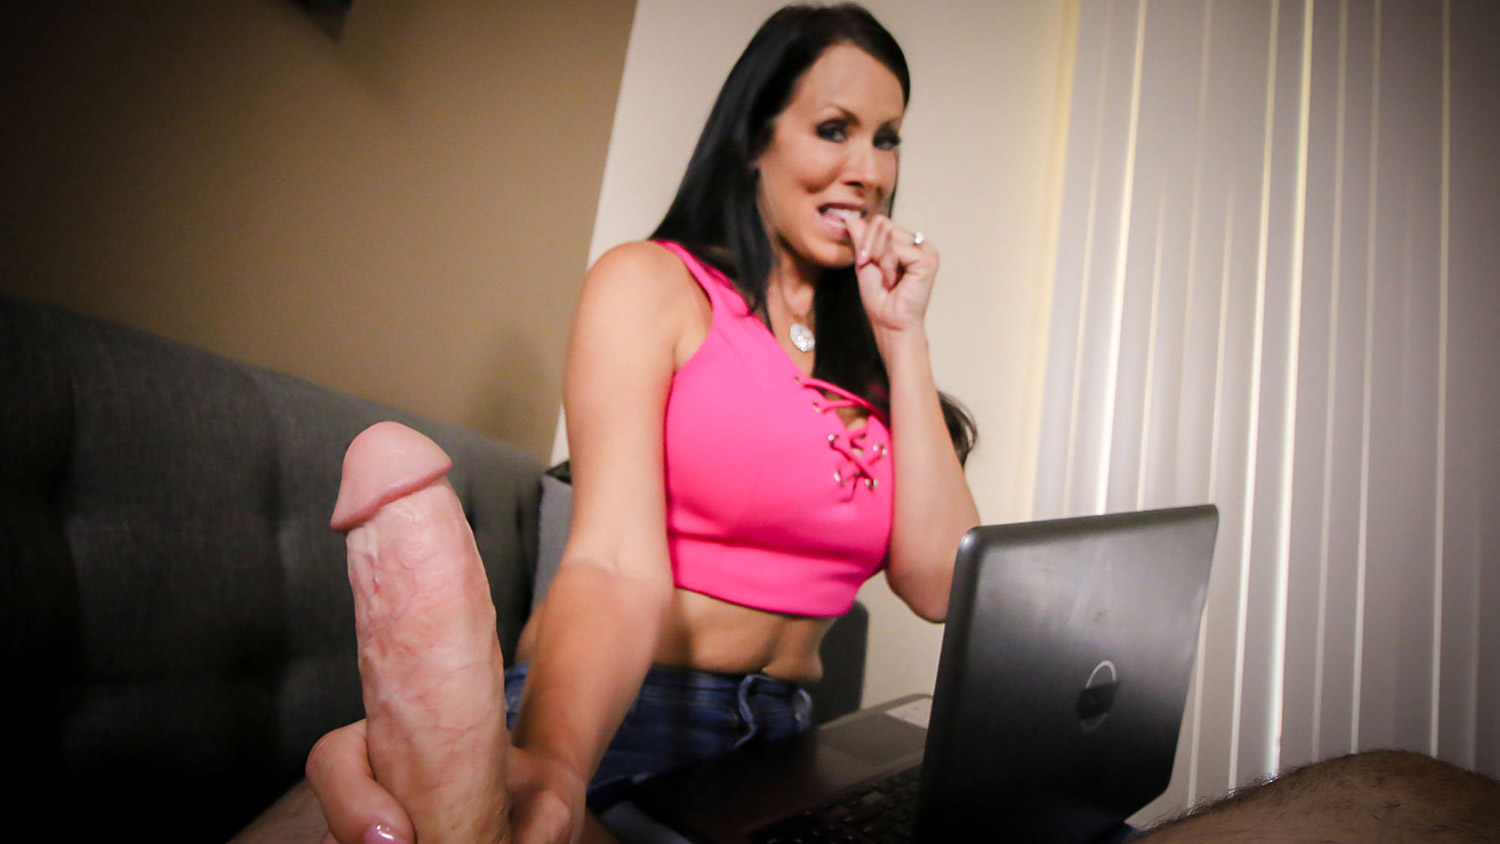 Pervmom sovereign syre in Steal My Keys, Get This D  Siterip mp4 Mobile+Desktop Teamskeet Siterip